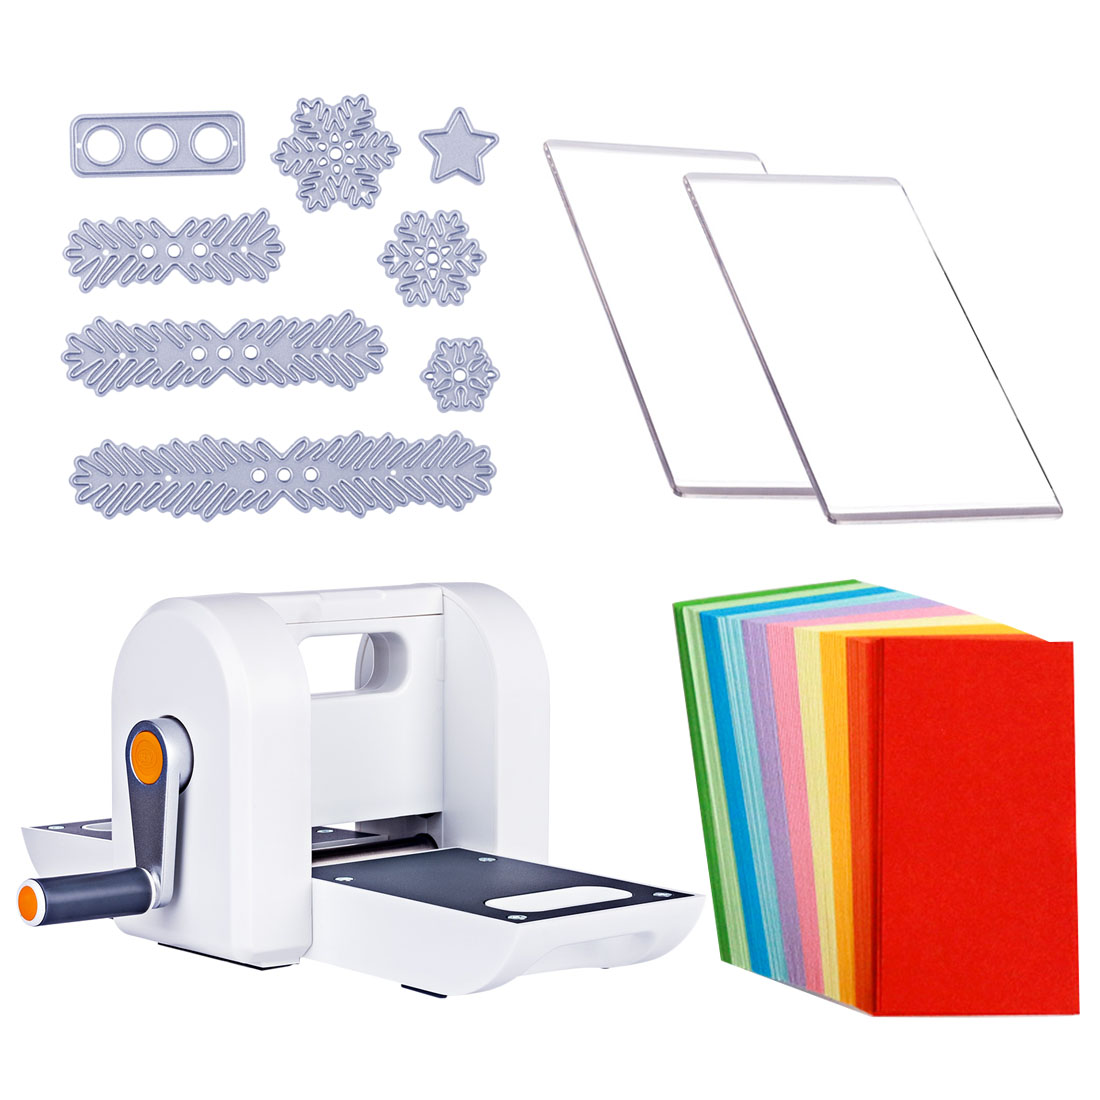 DIY Die Cutting Embossing Machine Scrabooking Alubm Card Cutter Tool Die-Cut Machines 200 Sheets Folding Paper Scrapbook Tool